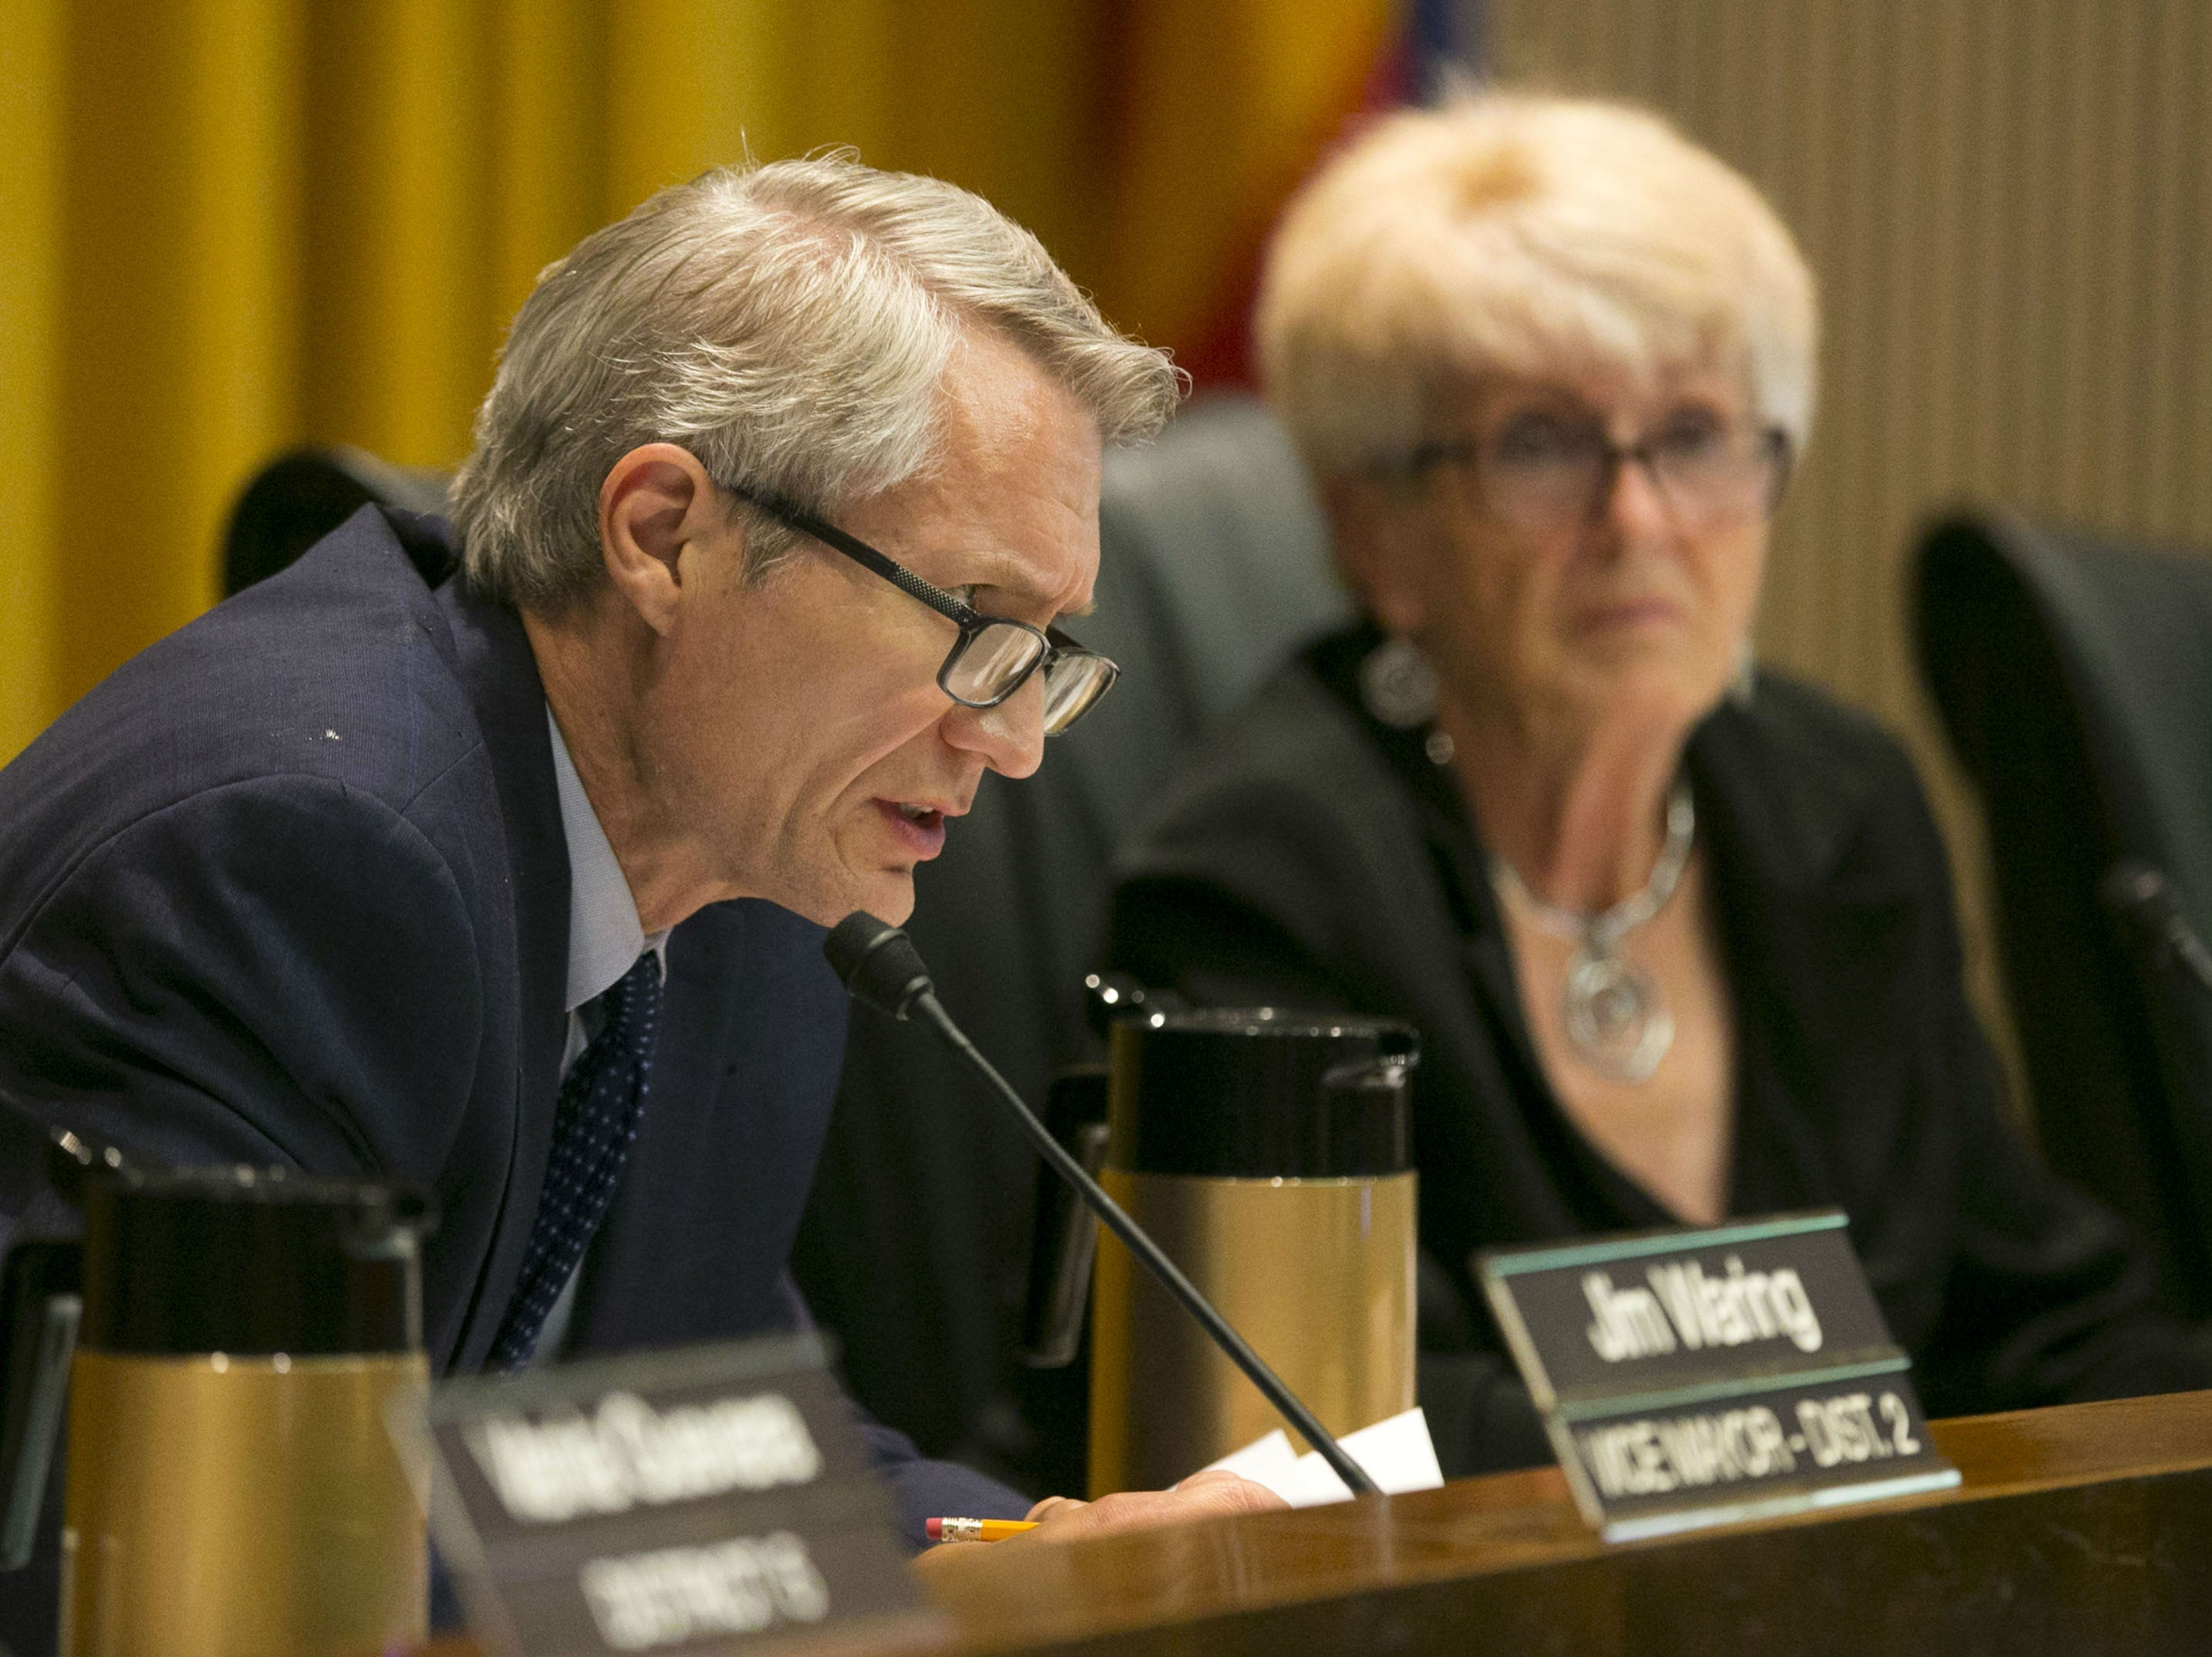 Phoenix Vice Mayor Jim Waring and Phoenix Mayor Thelda Williams during a city council meeting on Sept. 19, 2018.